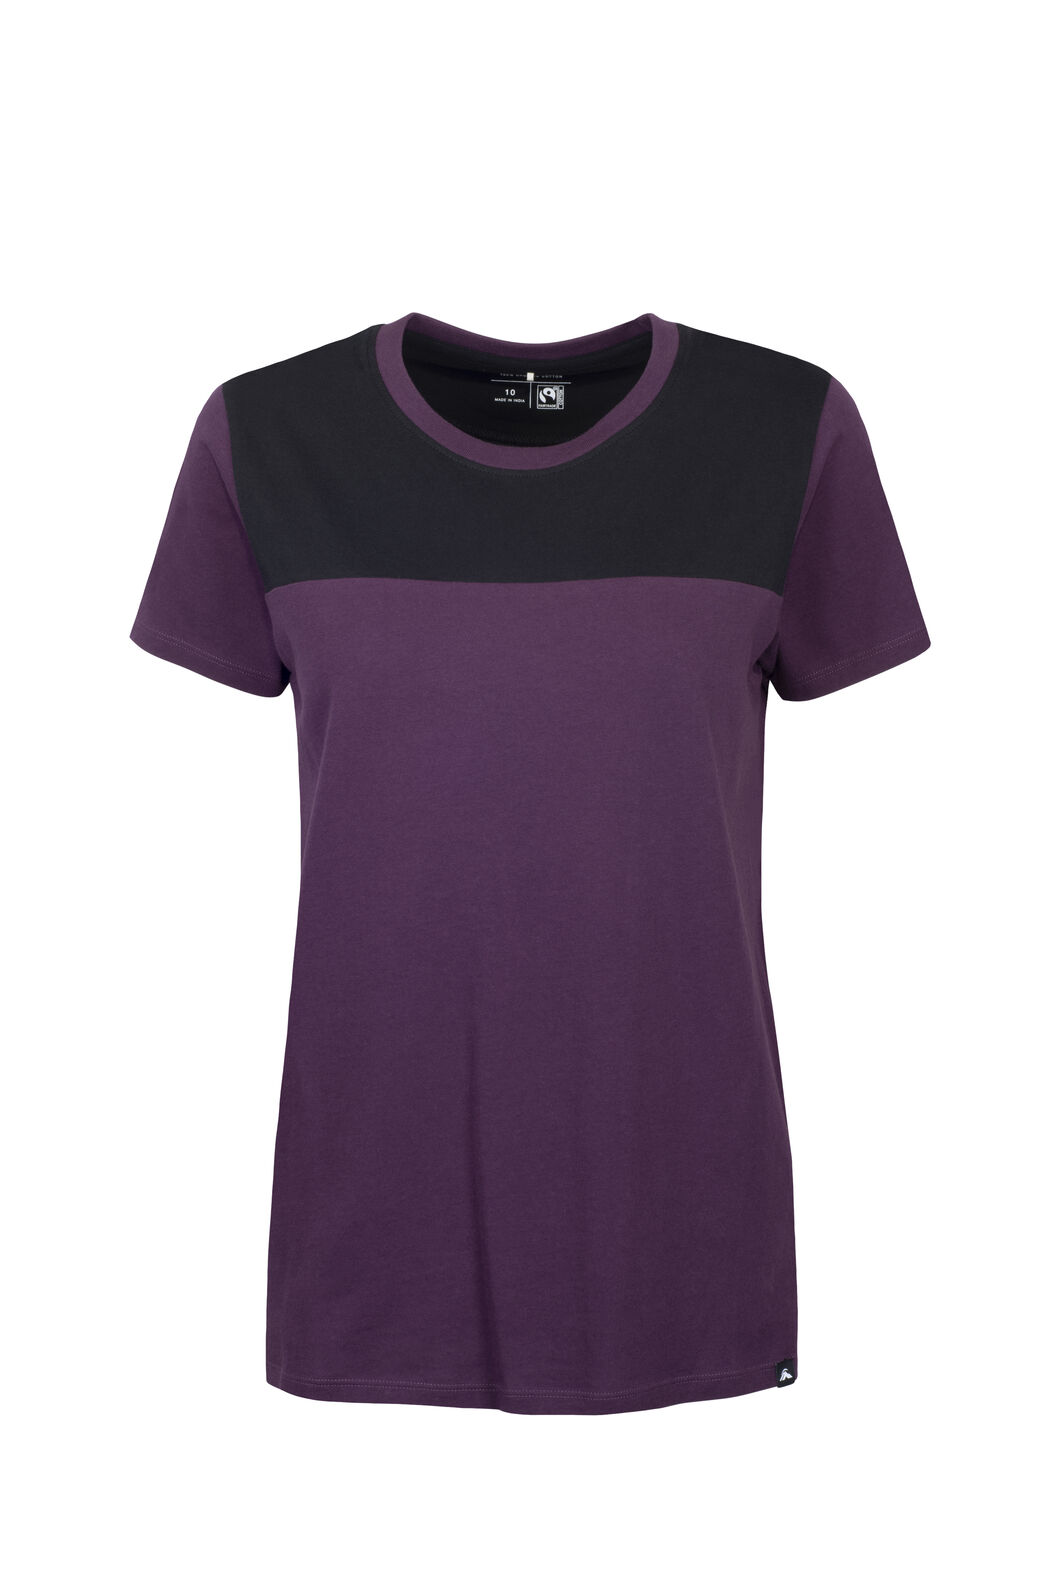 Macpac Panel Fairtrade Organic Cotton Tee — Women's, Blackberry Wine, hi-res